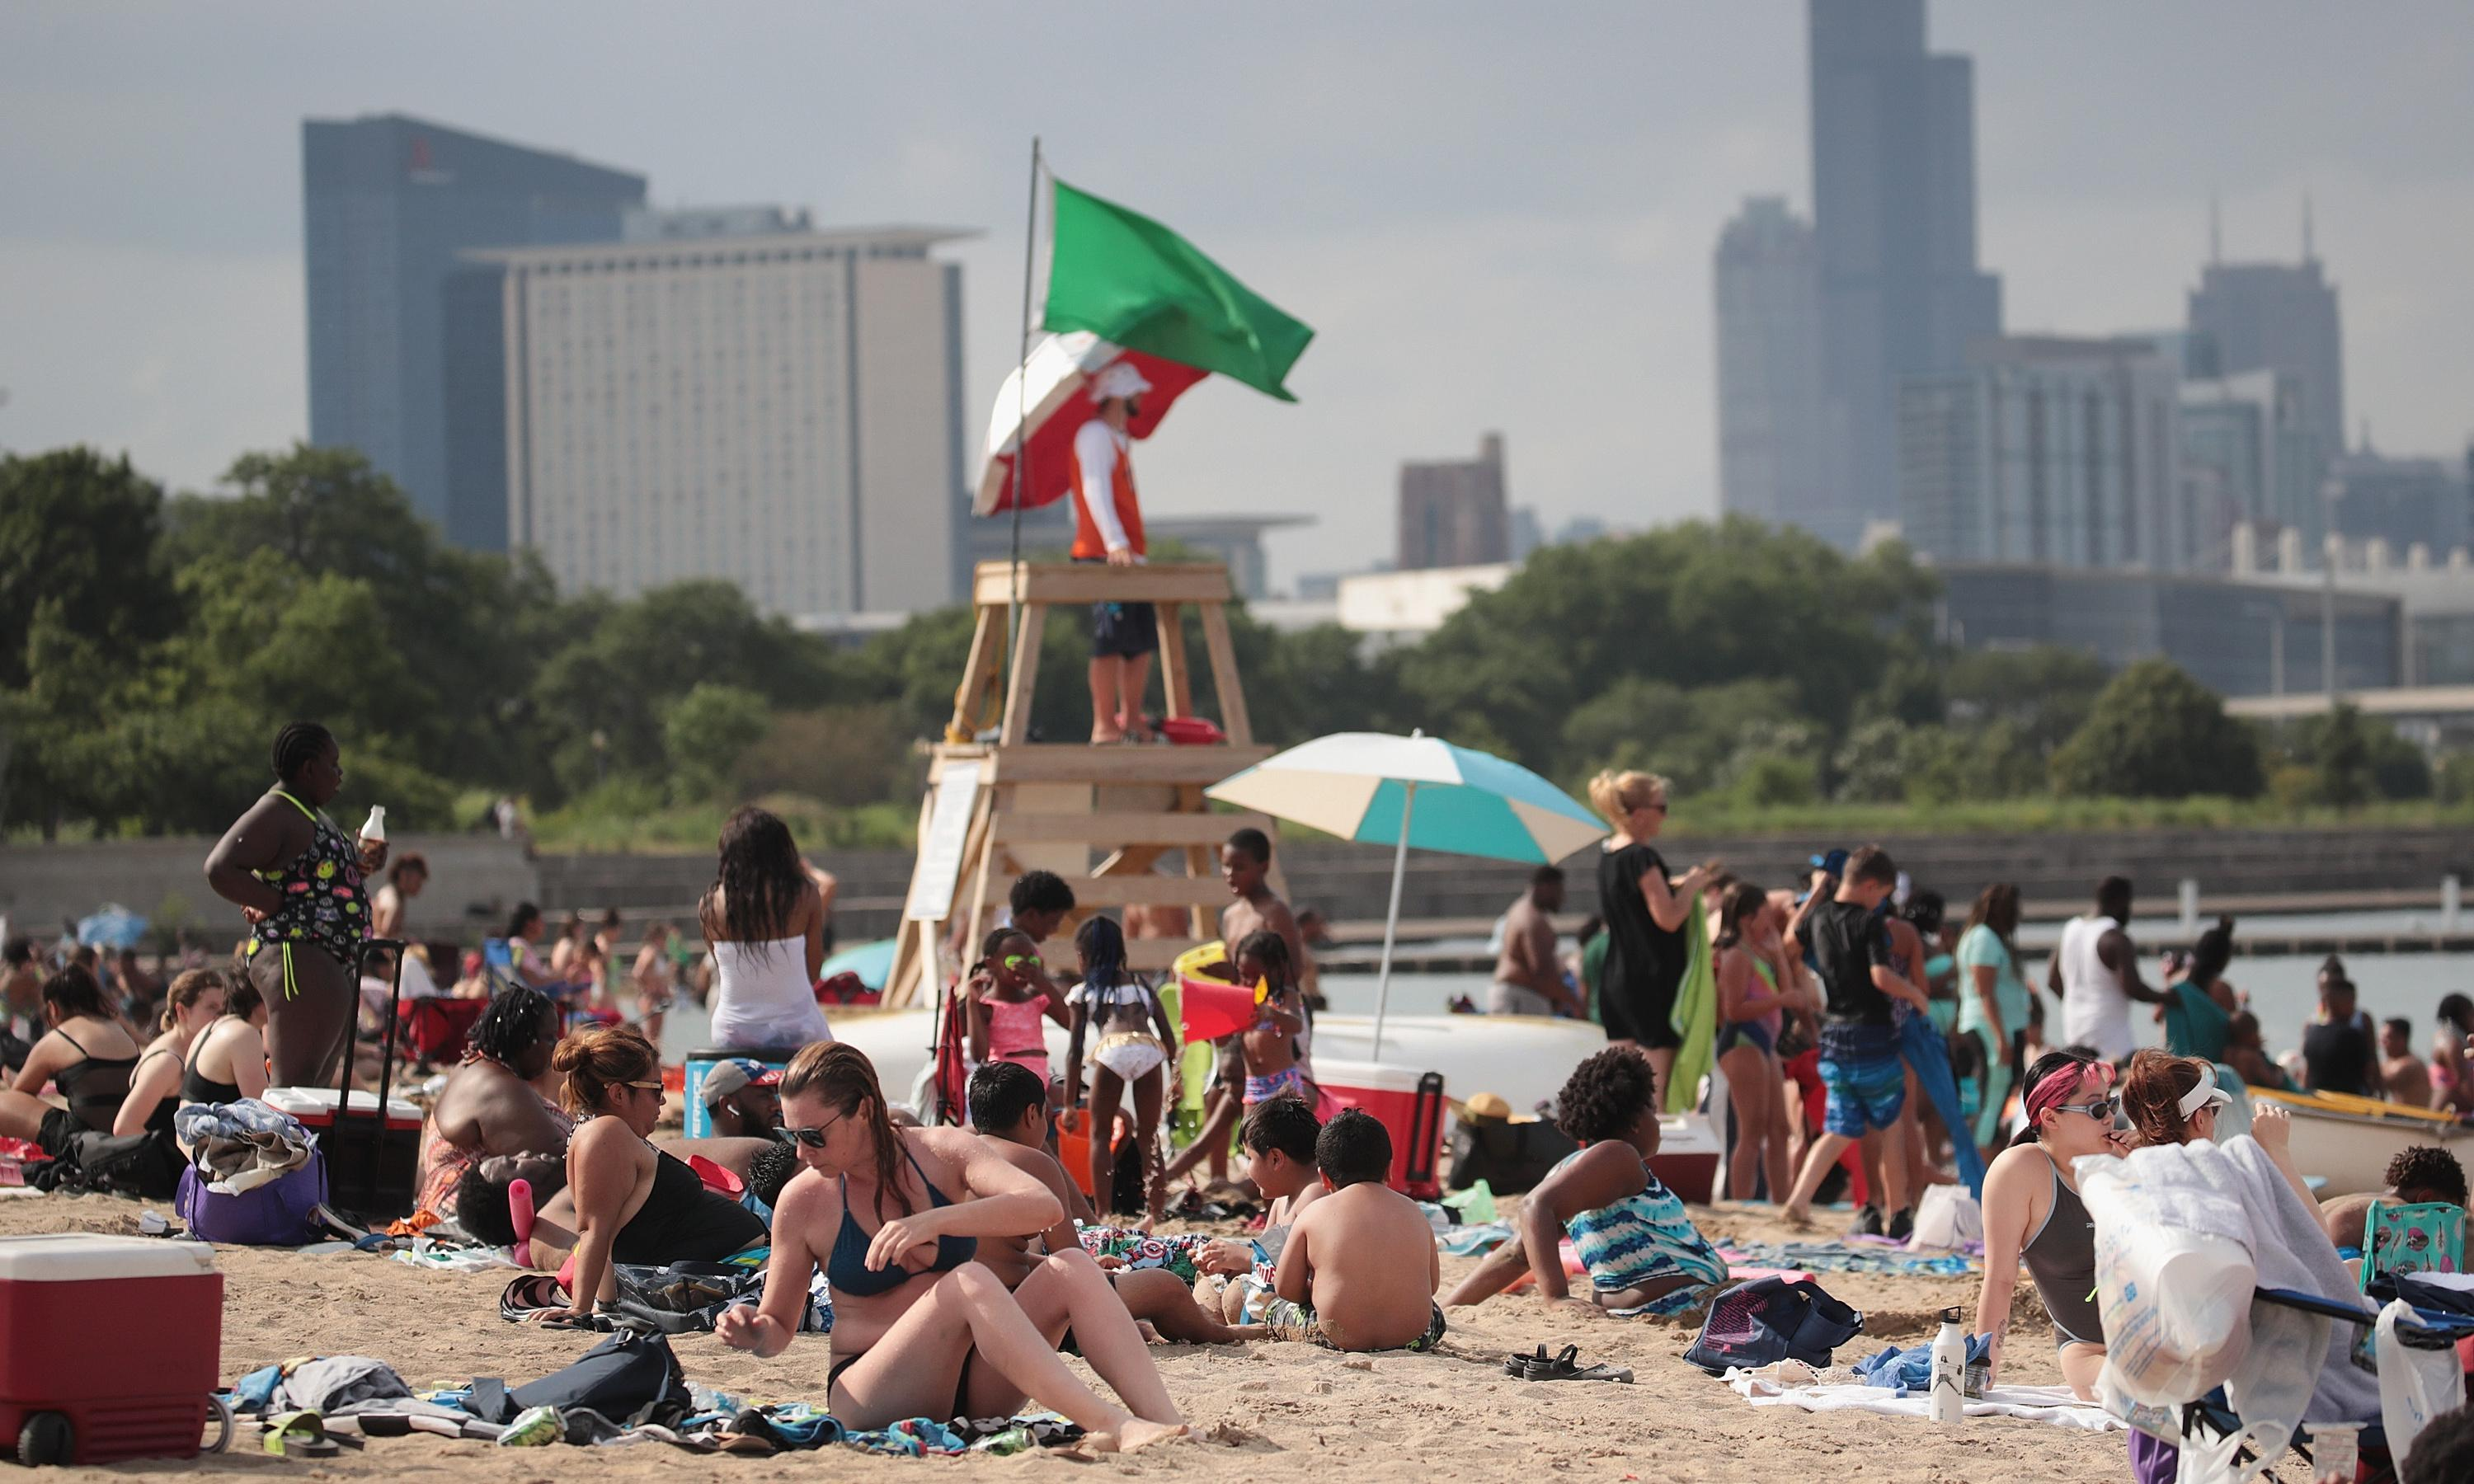 Fecal bacteria found at more than half of US beaches last year, report says